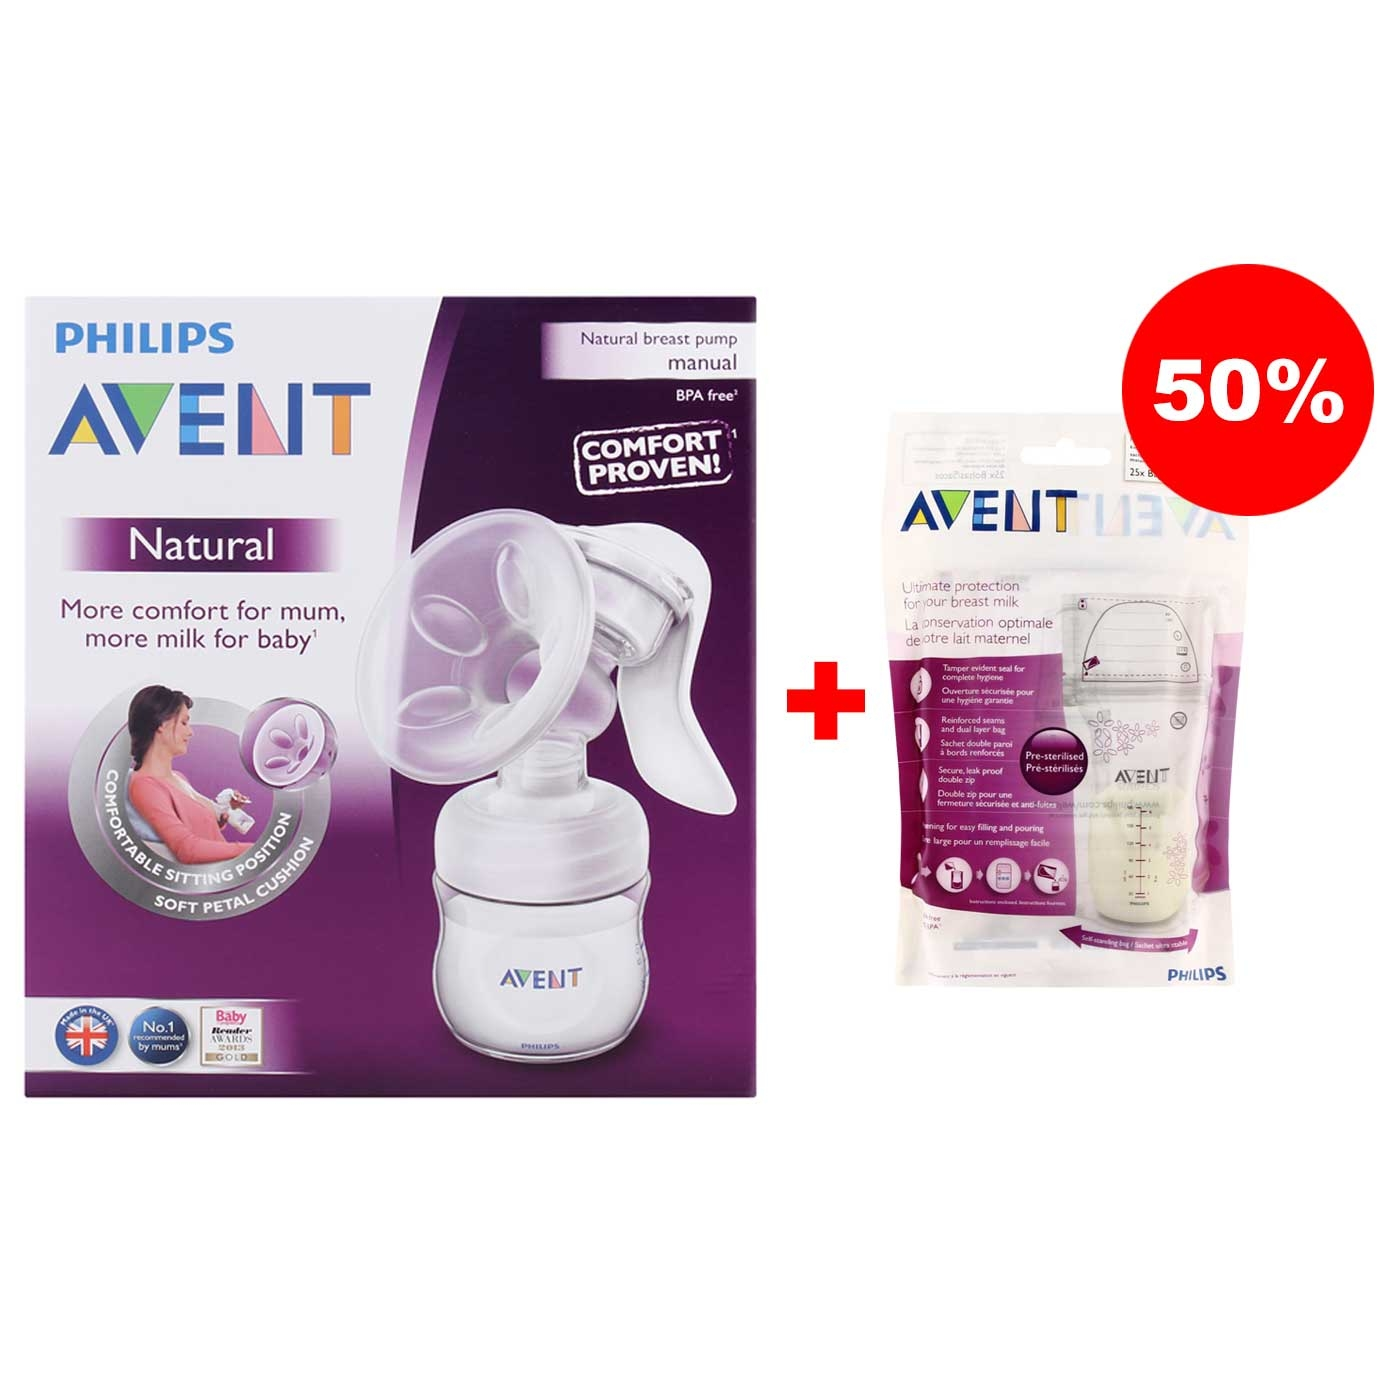 Philips Avent Natural Breastpump Manual Comfort Plus Bottle